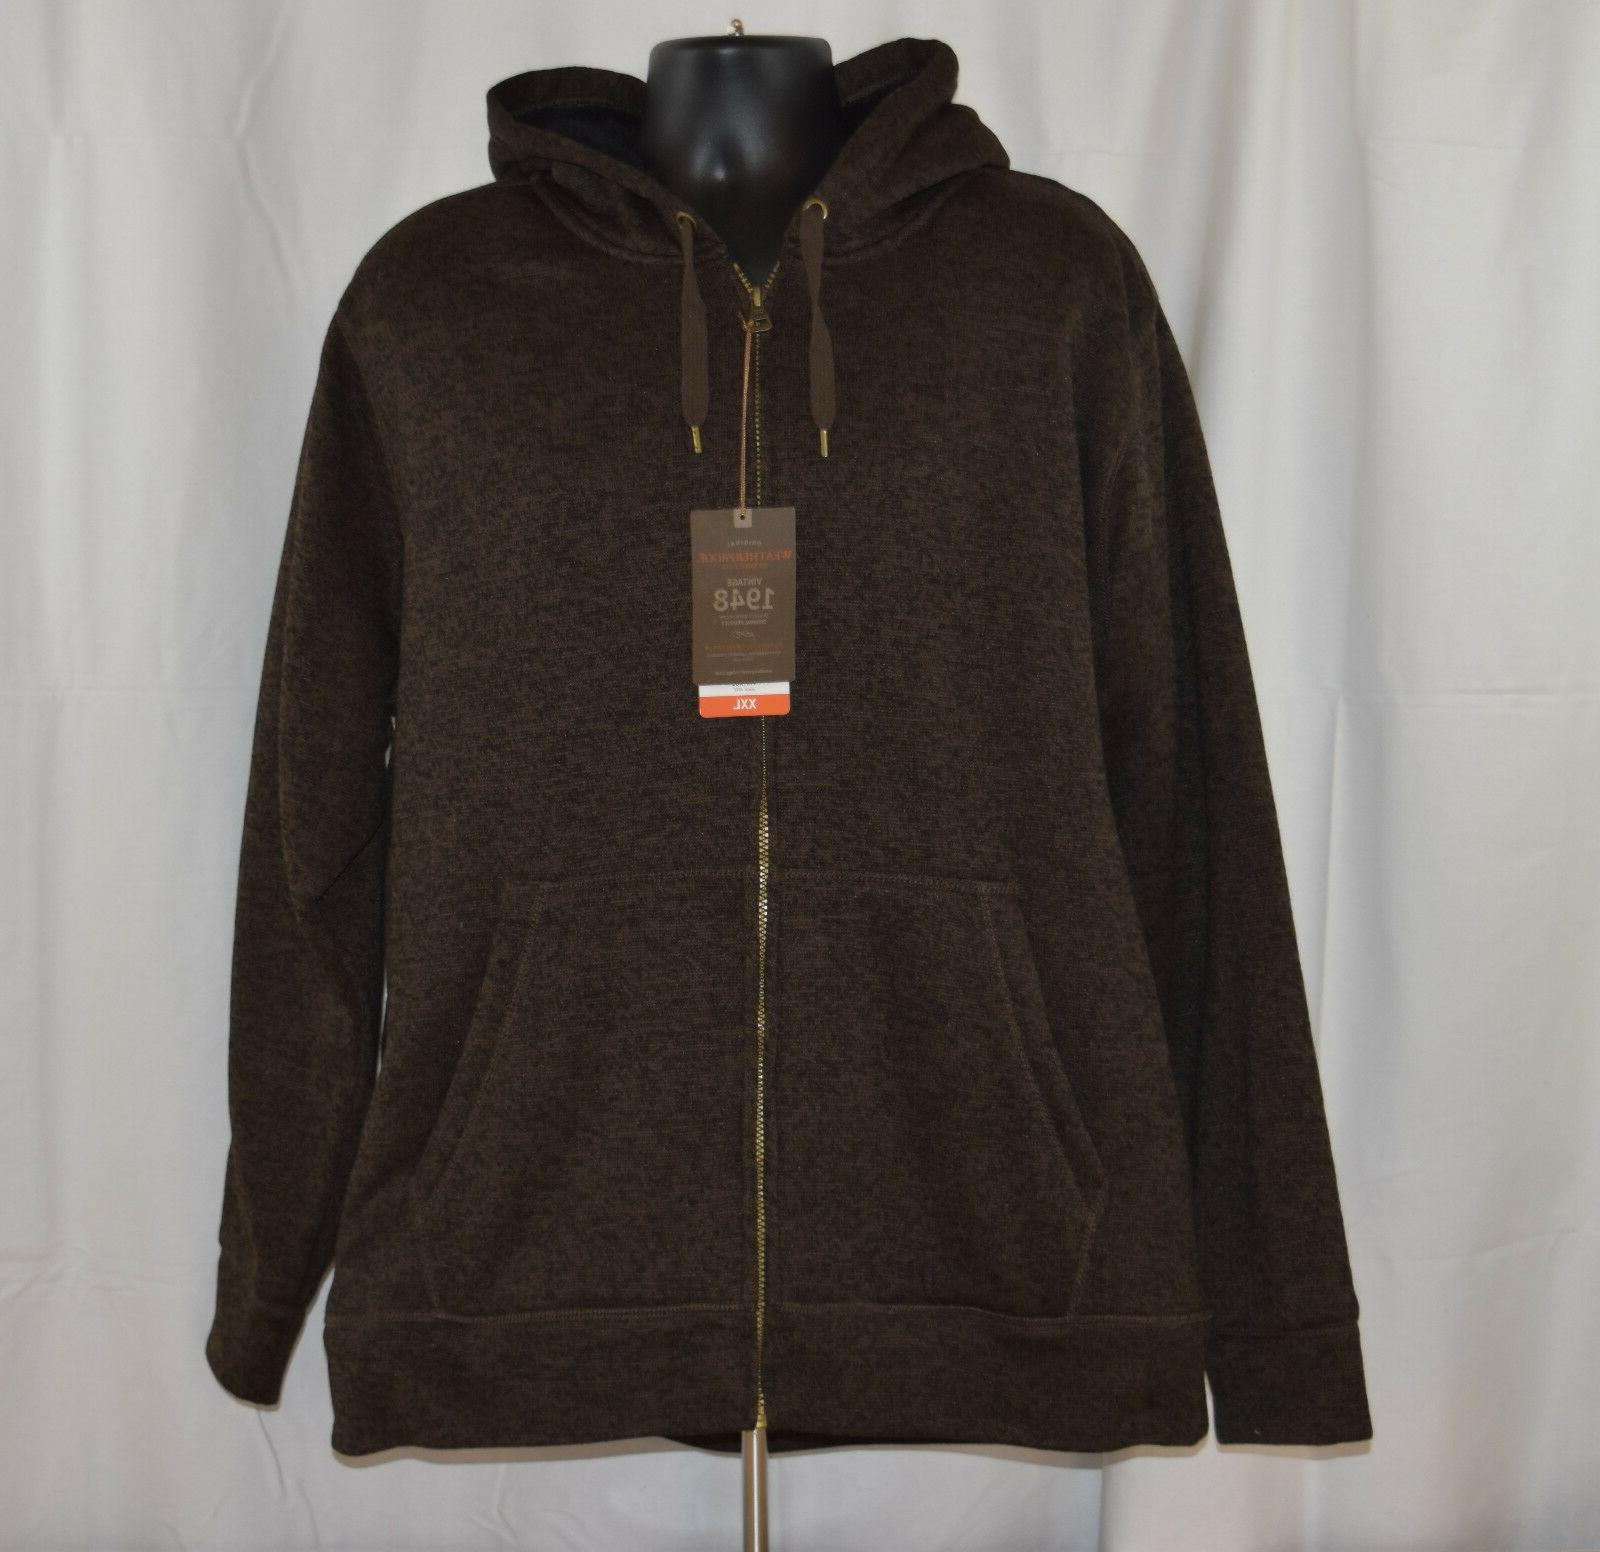 NWT Zip Lined Sweater VARIETY